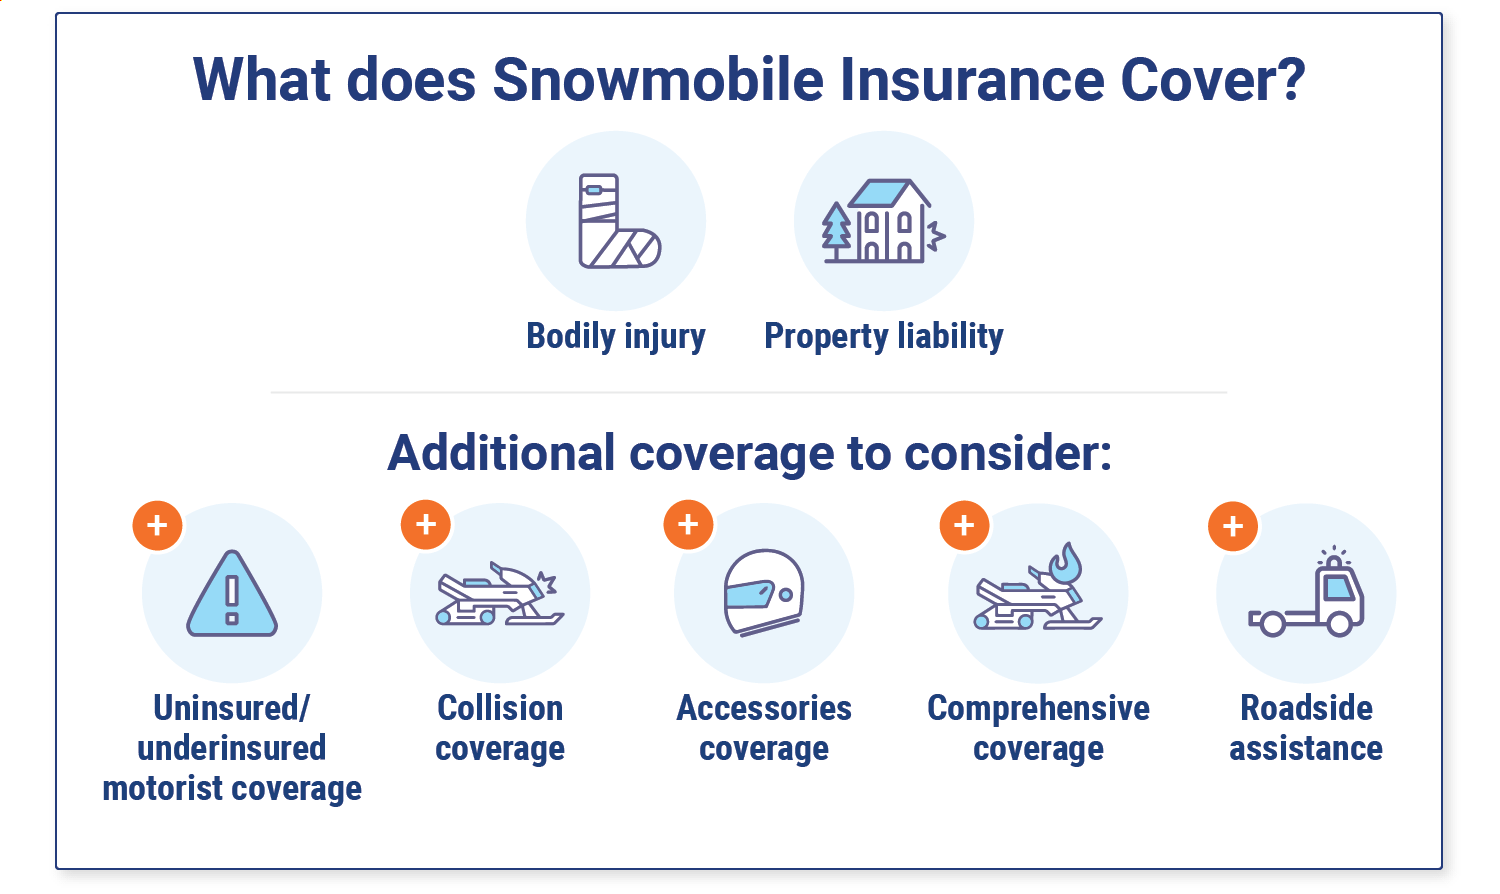 What Does Snowmobile Insurance Cover?